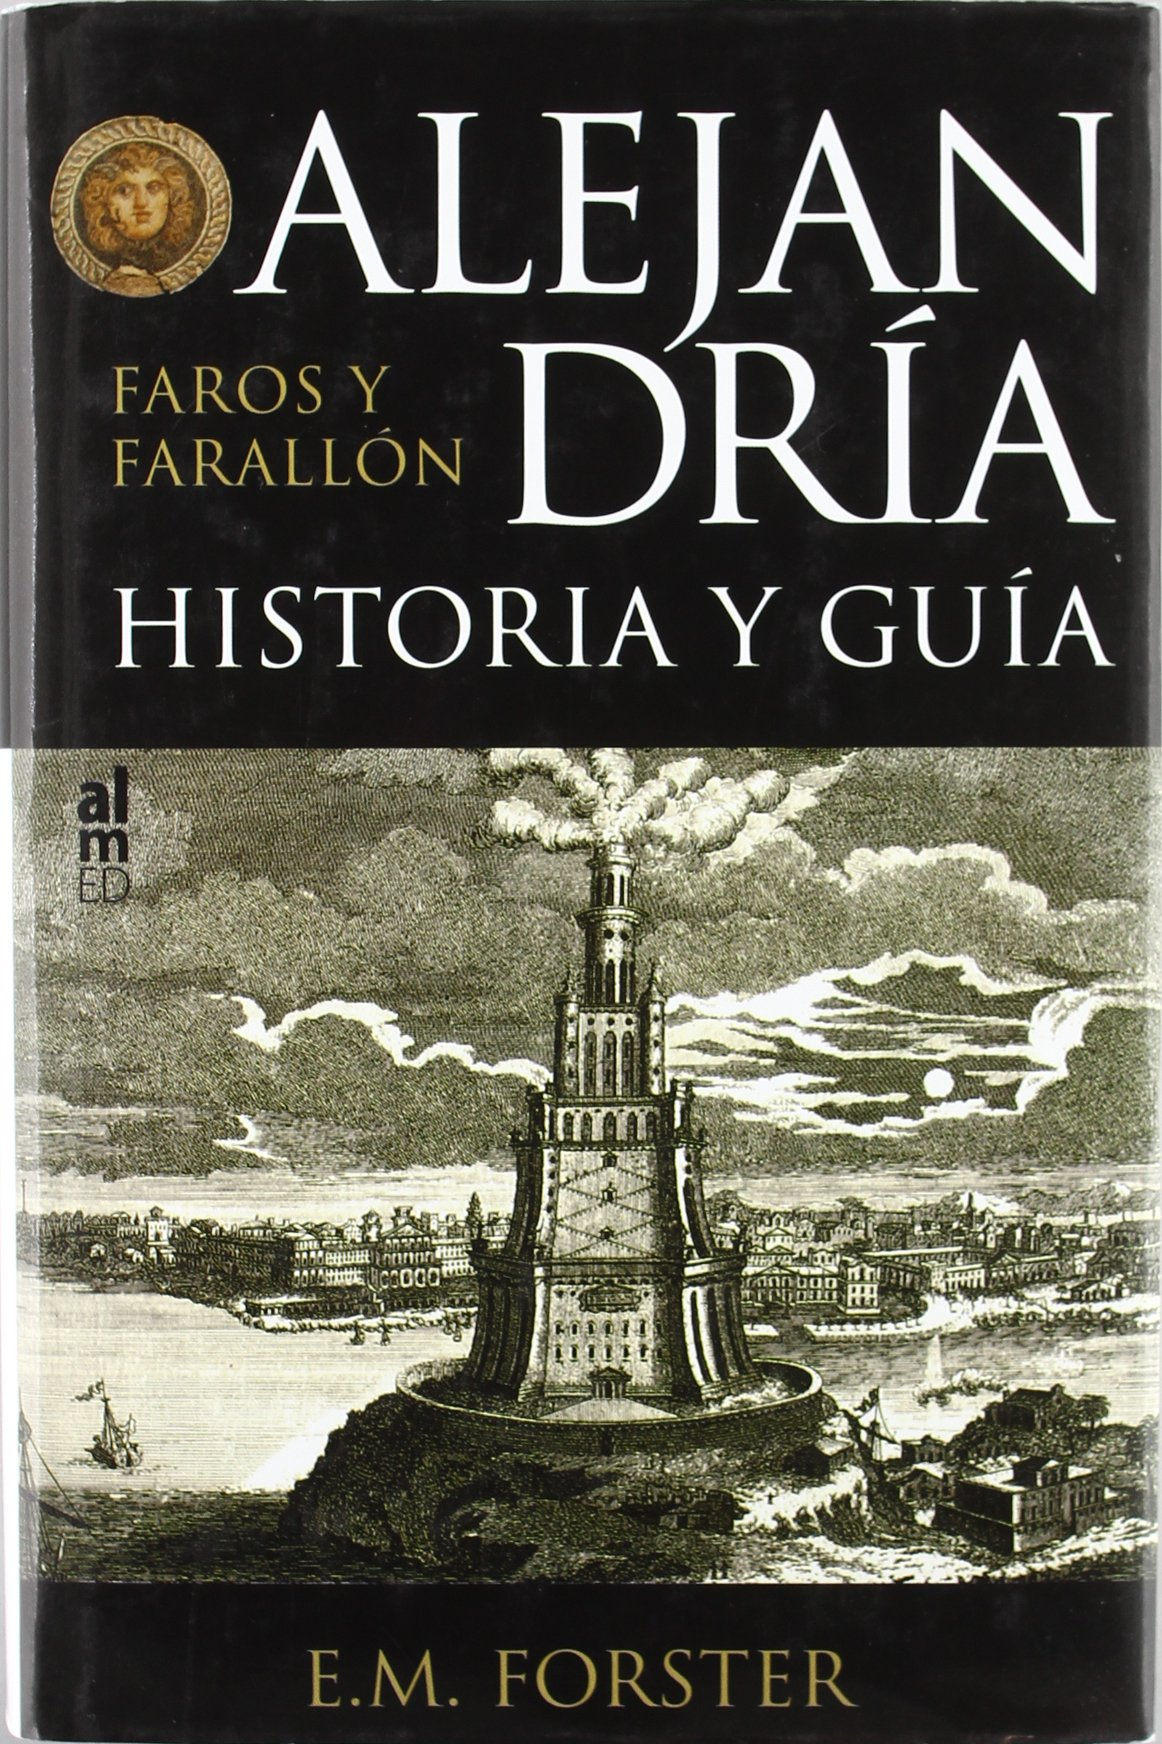 Alejandria Historia Y Guia Faros Tapa dura – 6 oct 2009 EDWARD MORGAN FORSTER EDITORIAL ALMED 8493668540 General & world history